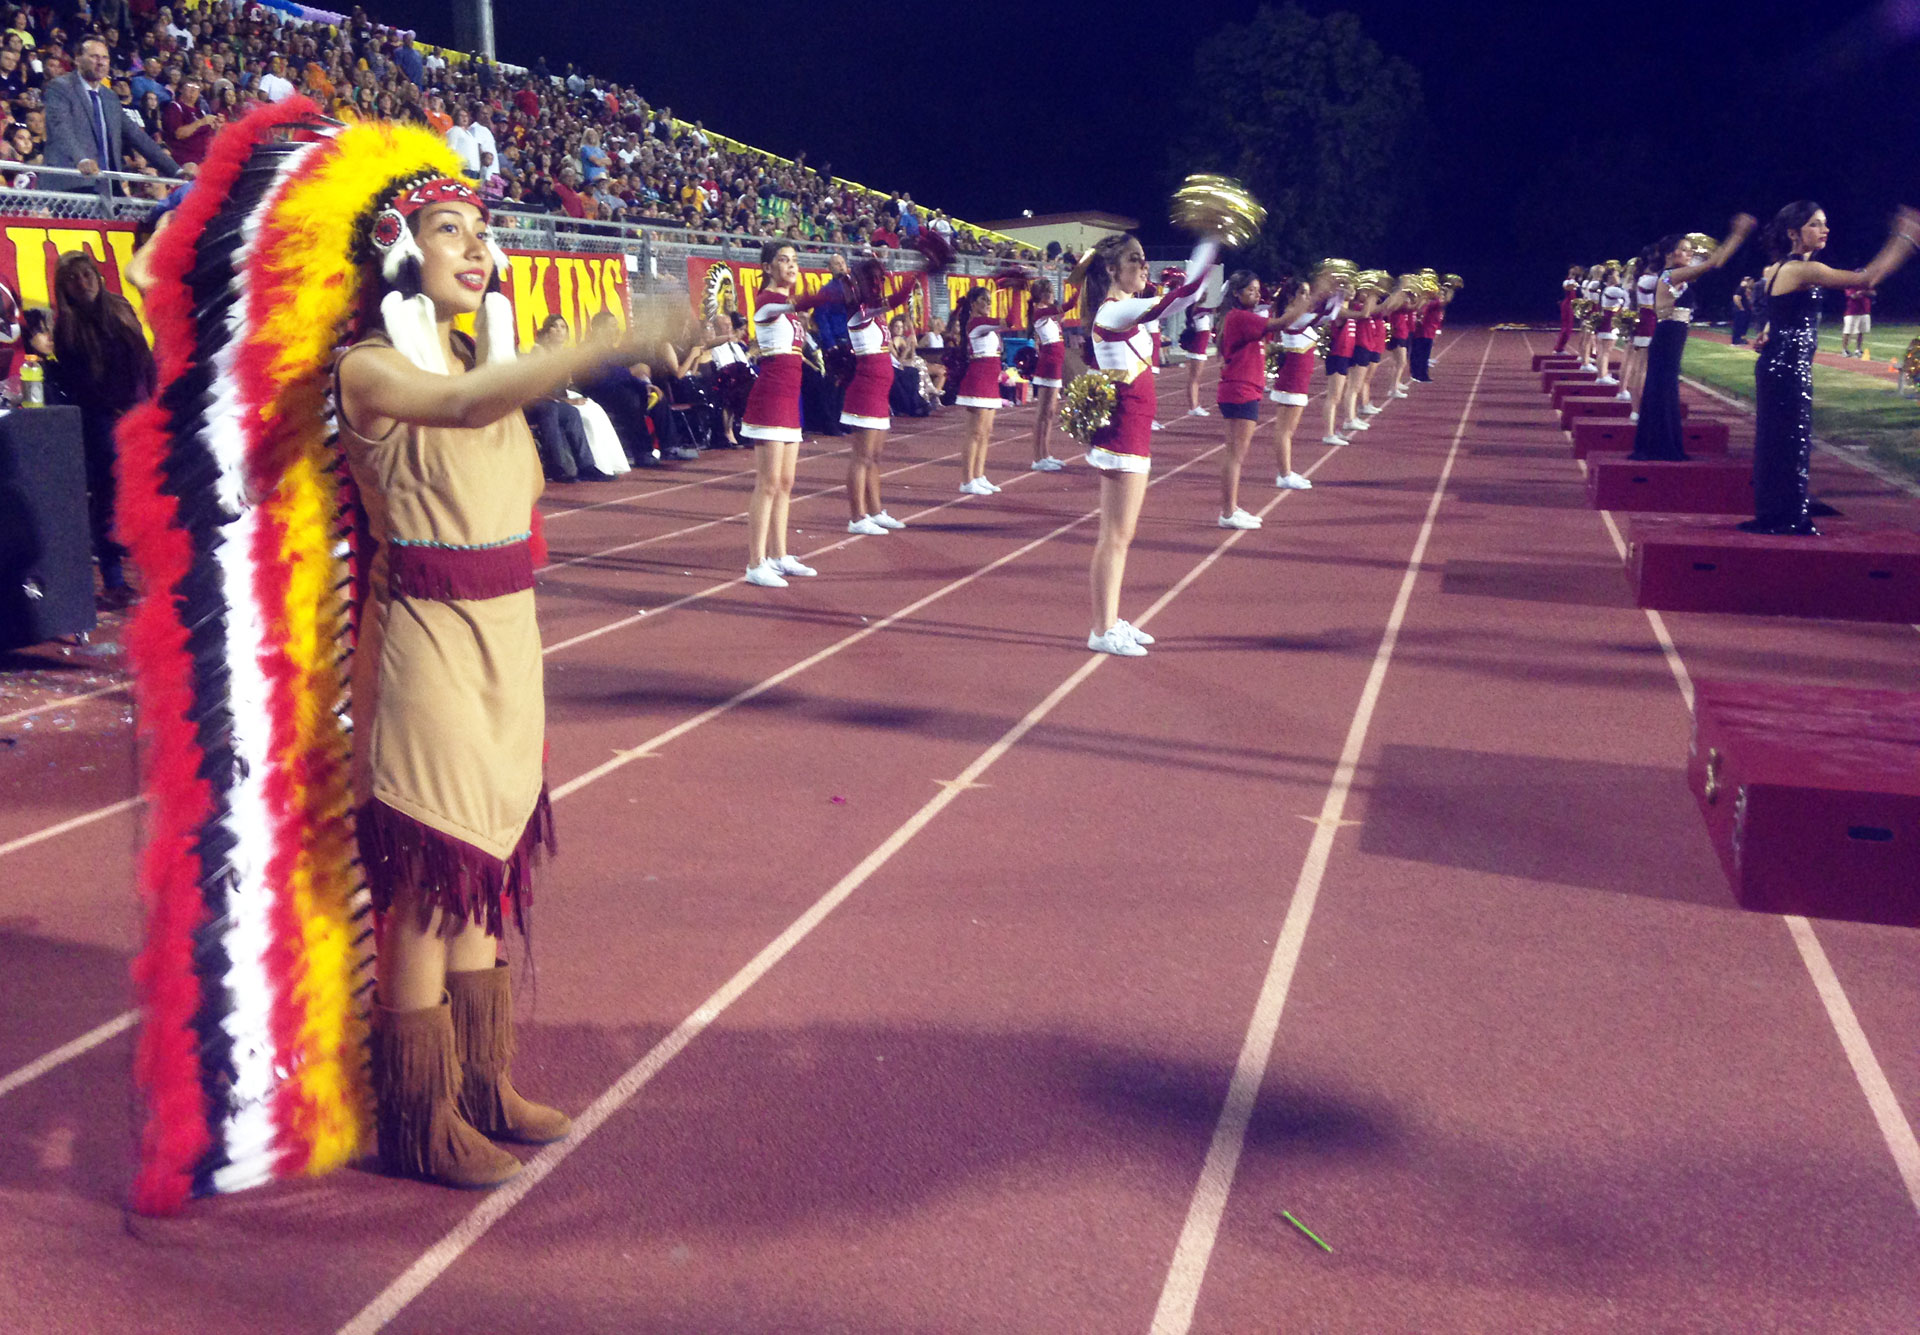 """The Redskins mascot roots for Tulare Union along with fans and cheerleaders, performing the """"tomahawk chop"""" gesture."""